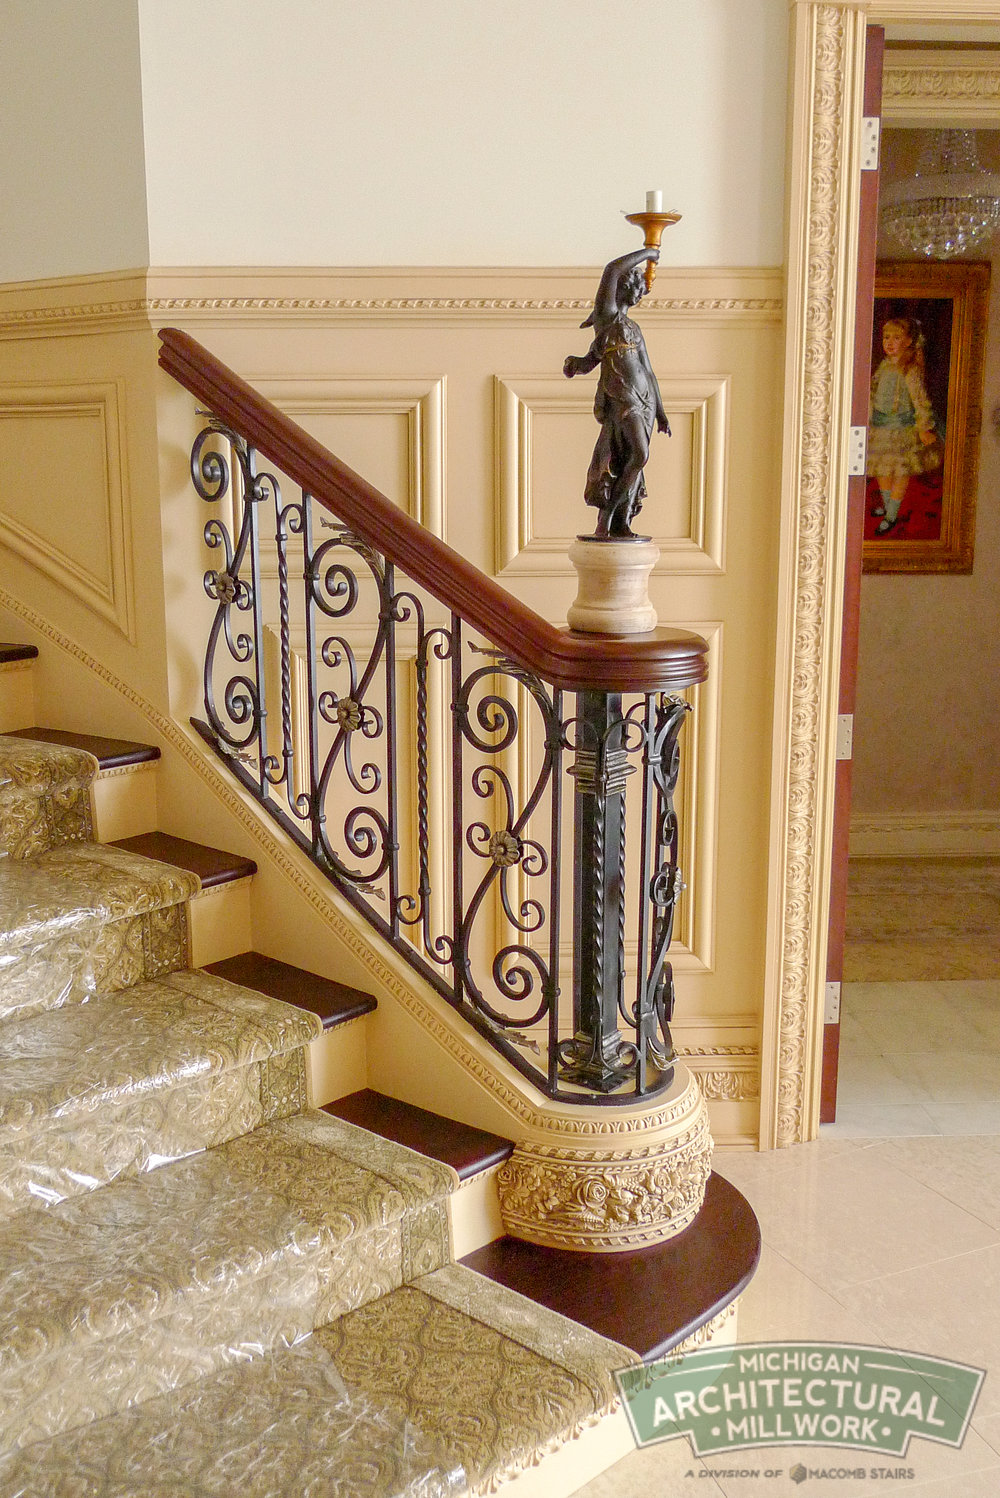 Michigan Architectural Millwork- Moulding and Millwork Photo-160.jpg